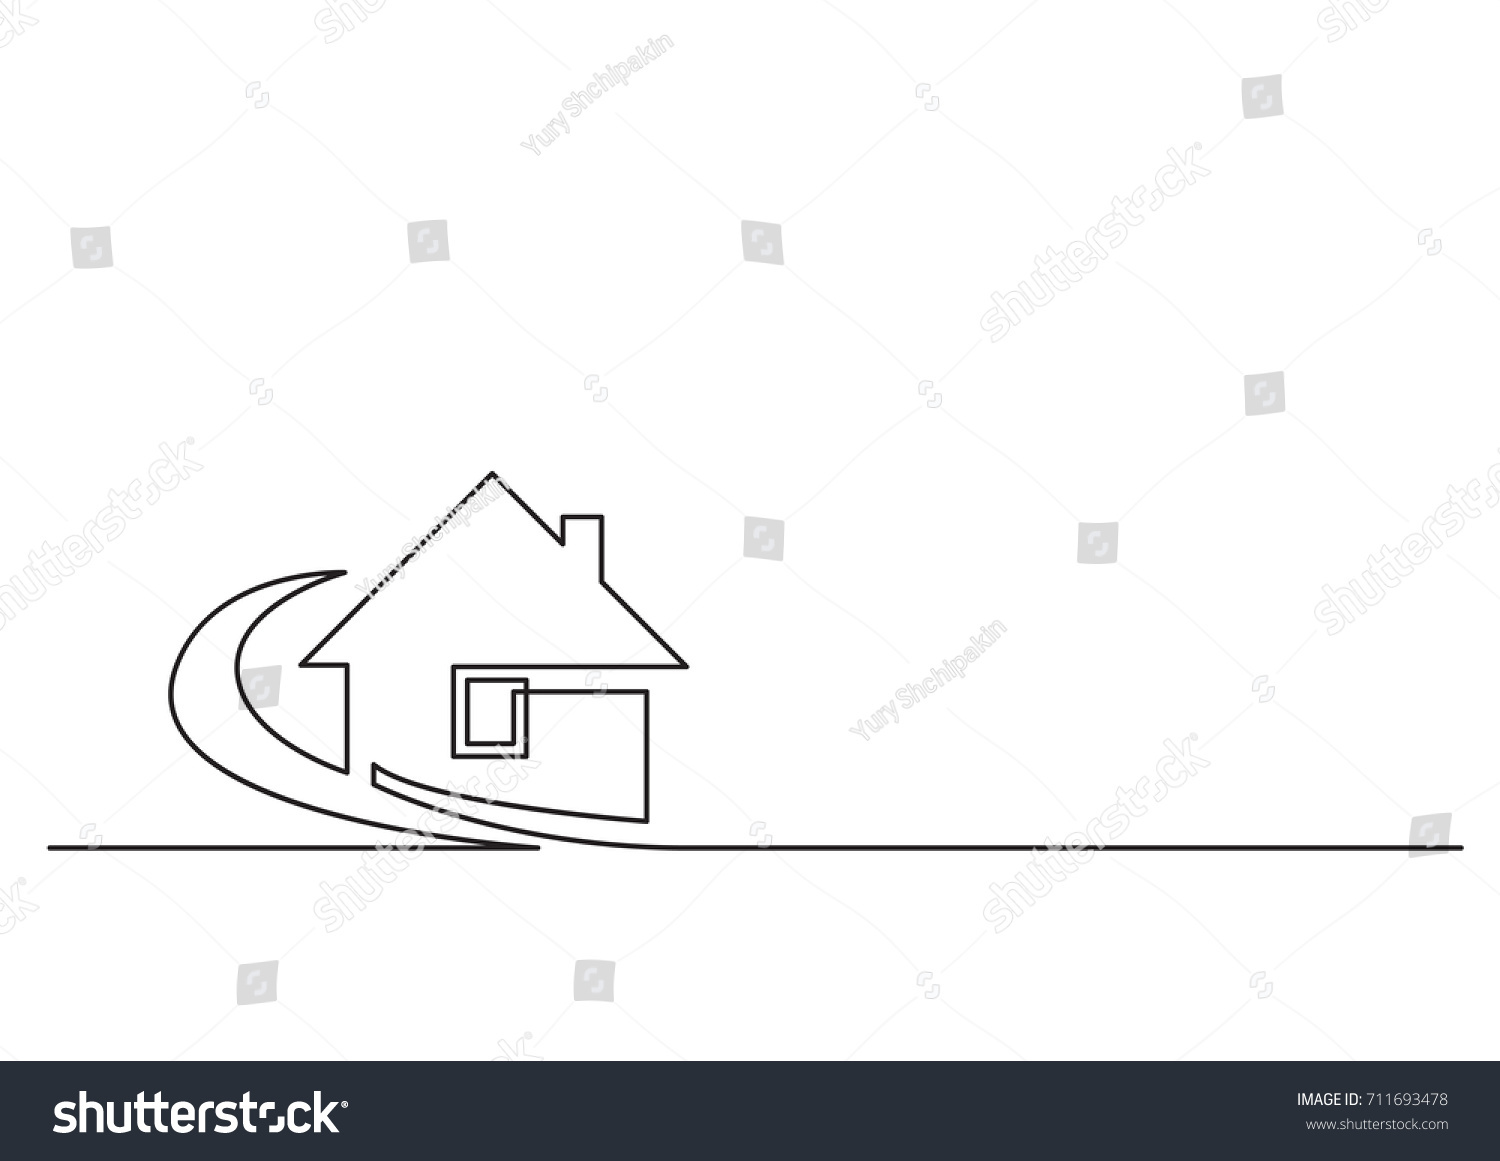 Single Line Text Art : One line logo design real estate stock vector  shutterstock